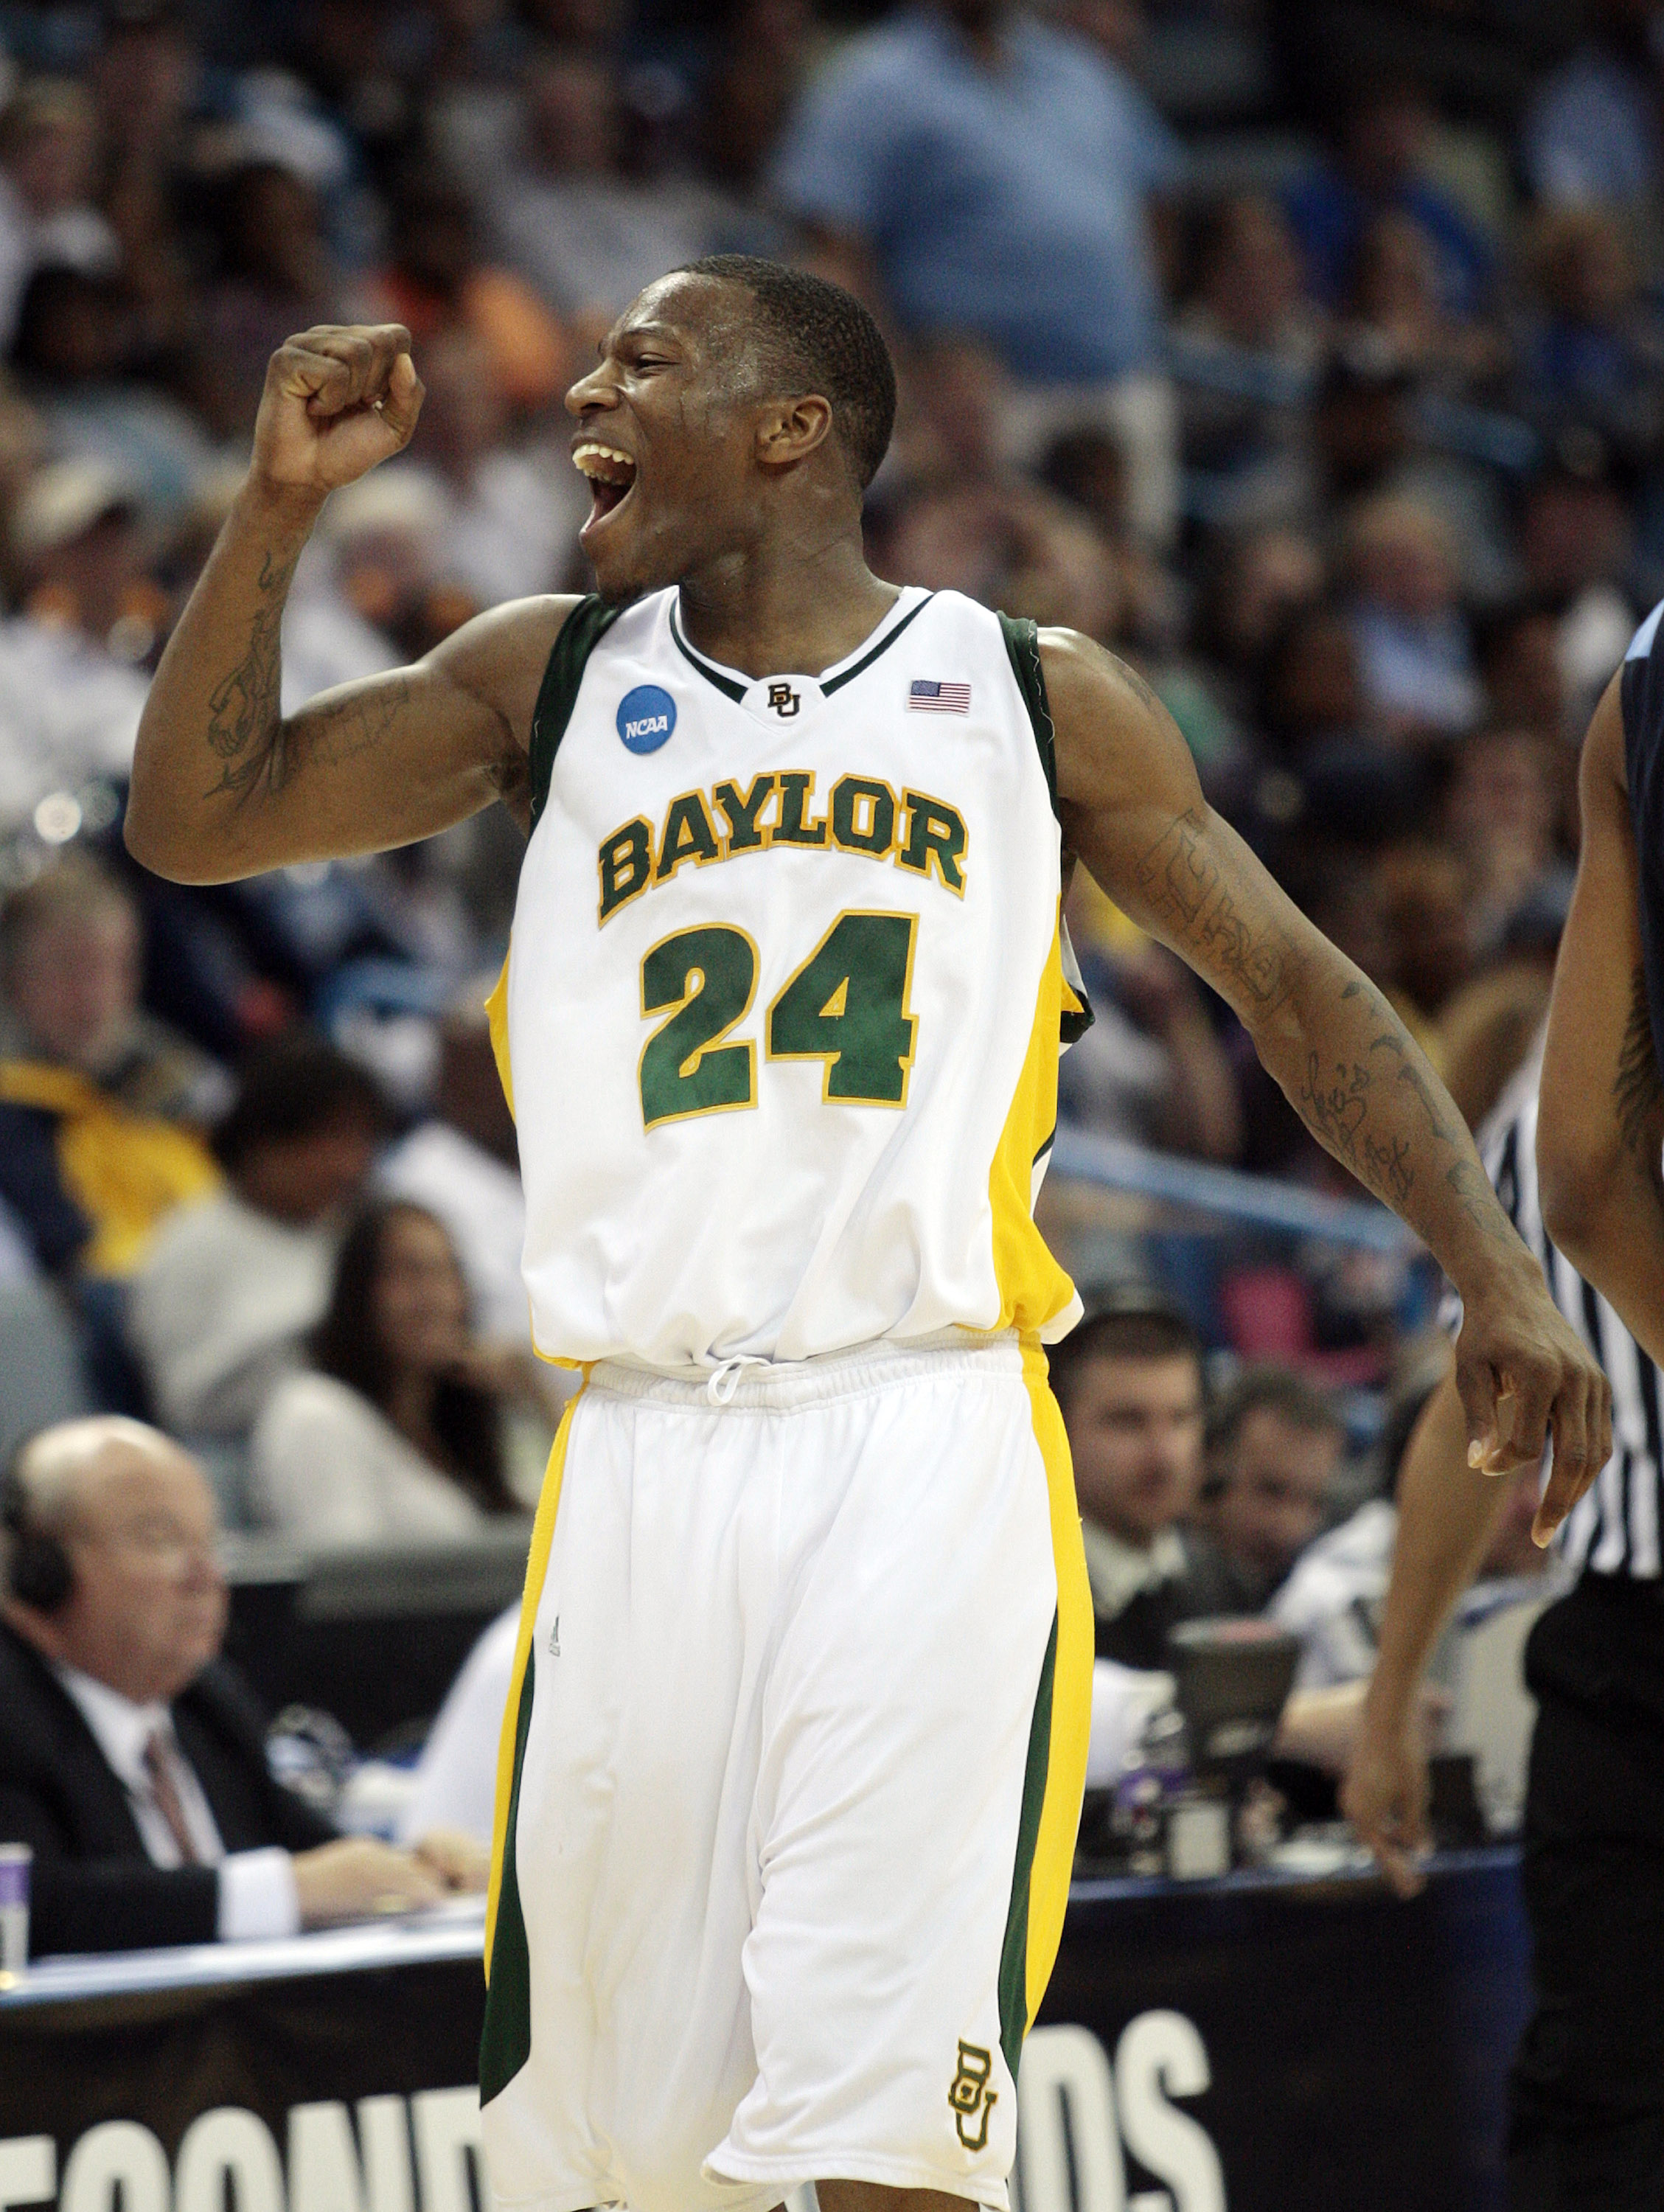 NEW ORLEANS - MARCH 20:  LaceDarius Dunn #24 of the Baylor Bears reacts after scoring against the Old Dominion Monarchs during the second round of the 2010 NCAA men's basketball tournament at the New Orleans Arena on March 20, 2010 in New Orleans, Louisia